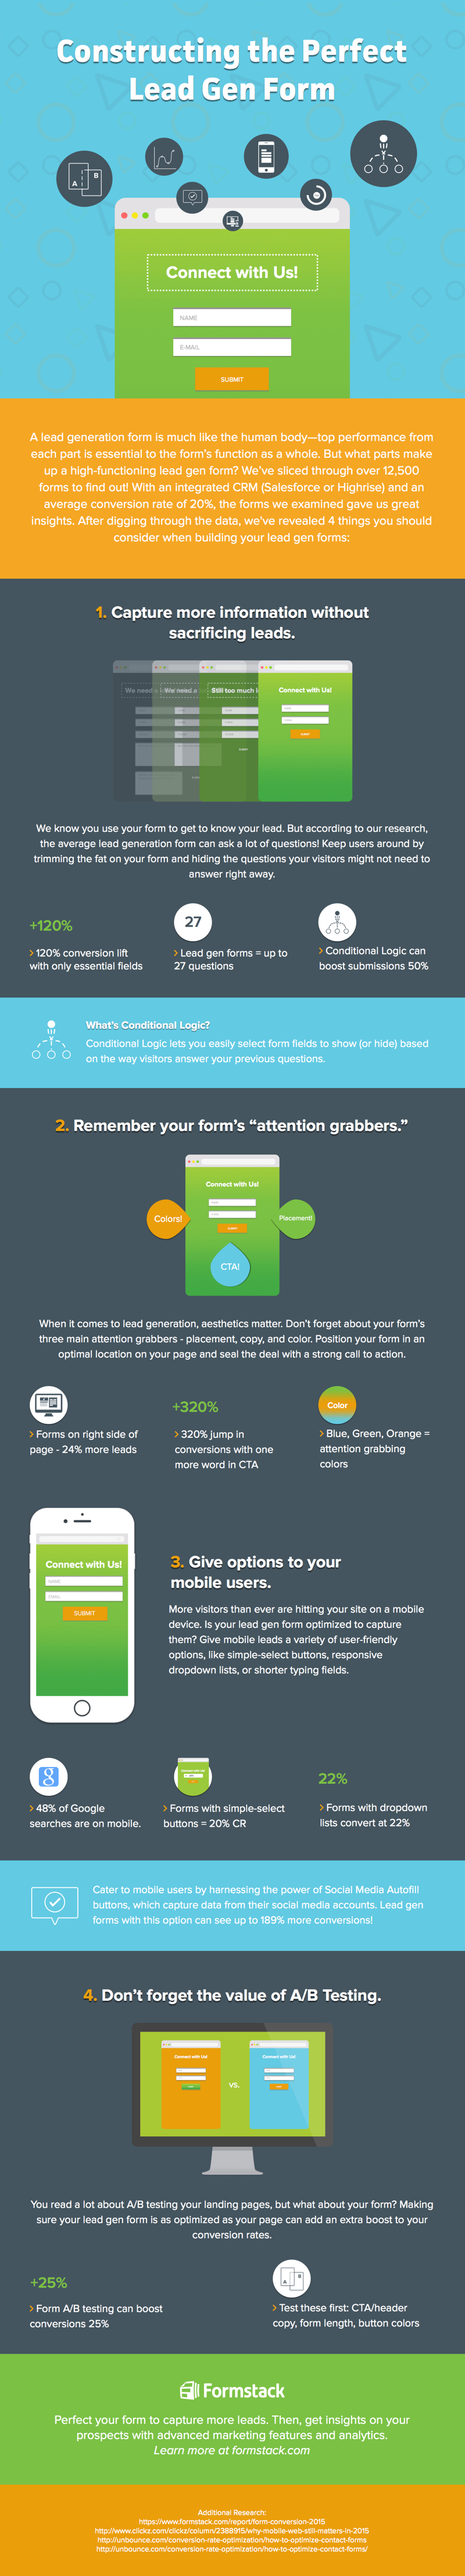 lead gen infographic 800px